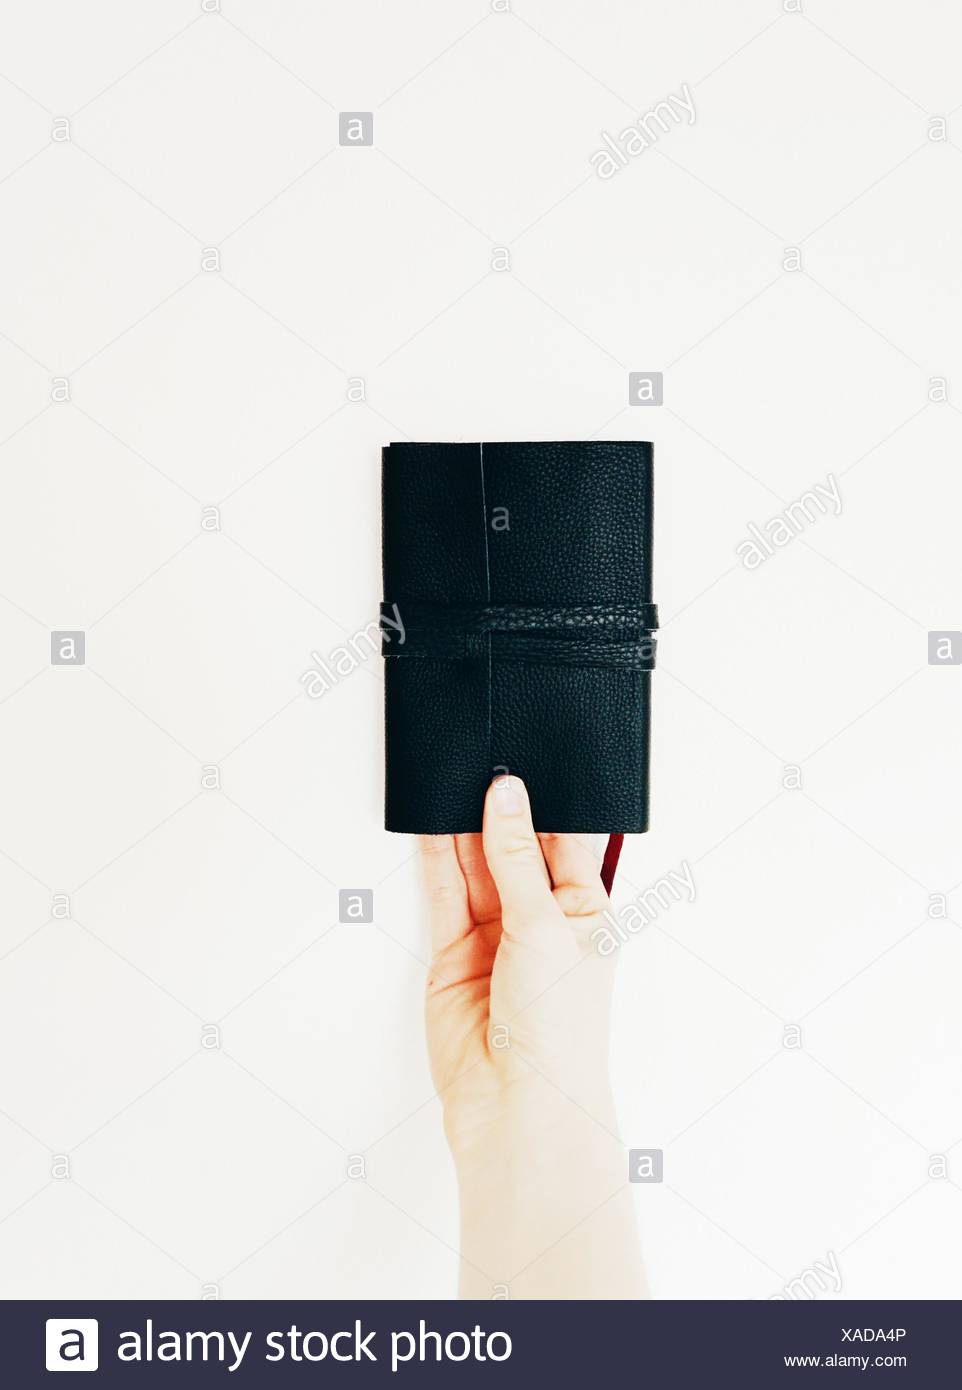 Close-Up Of Hand Holding Black Wallet Over White Background - Stock Image